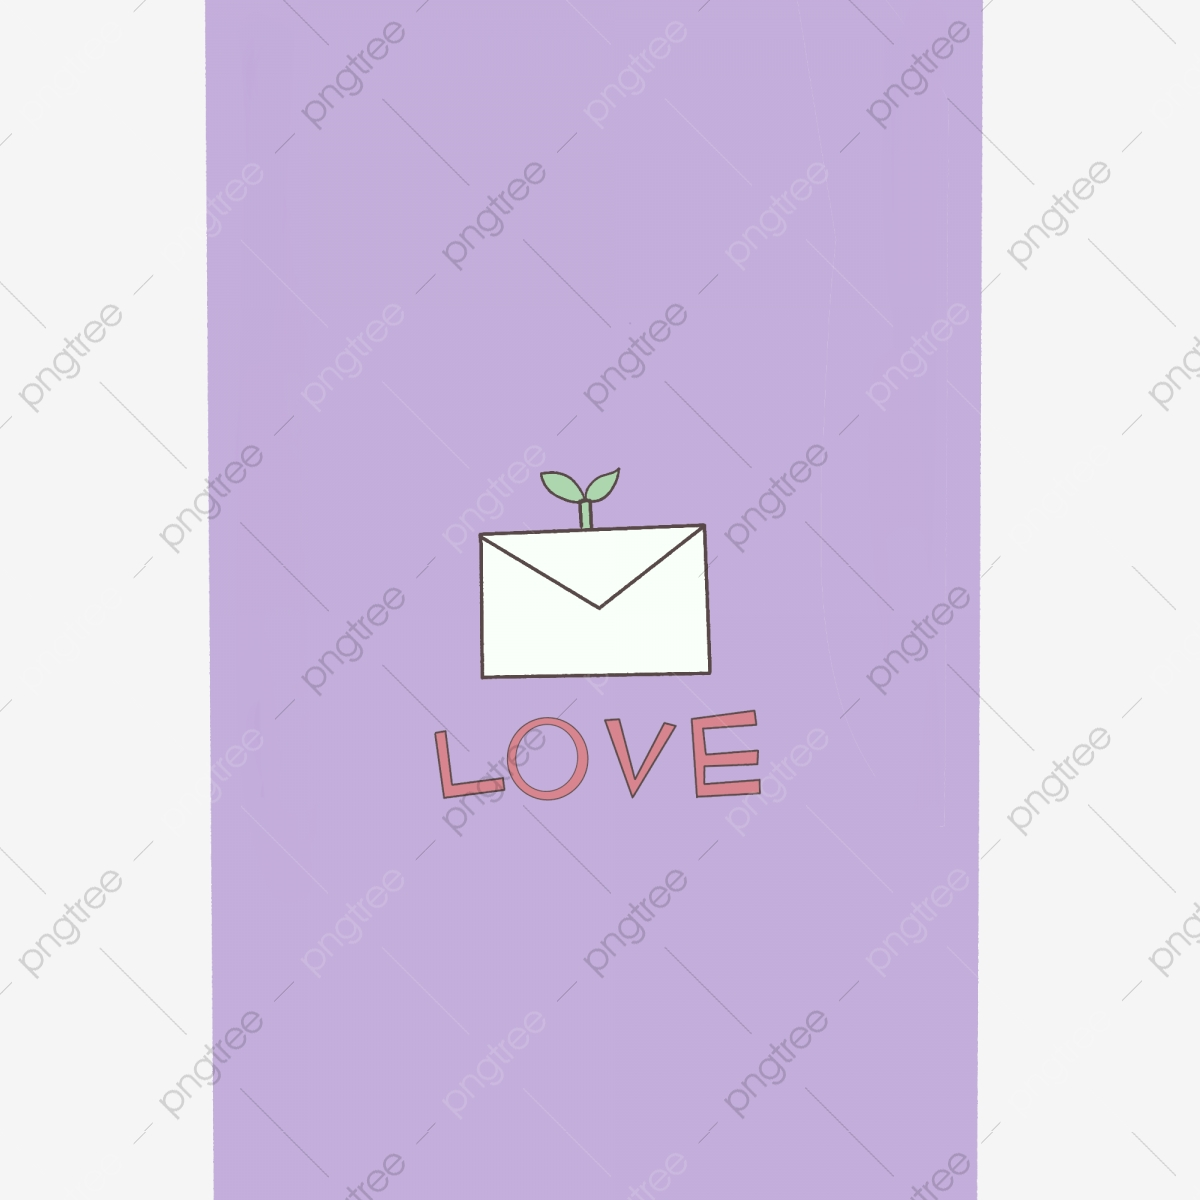 Original Cute Letter Wallpaper Material Cute Letters Wallpaper Png Transparent Clipart Image And Psd File For Free Download